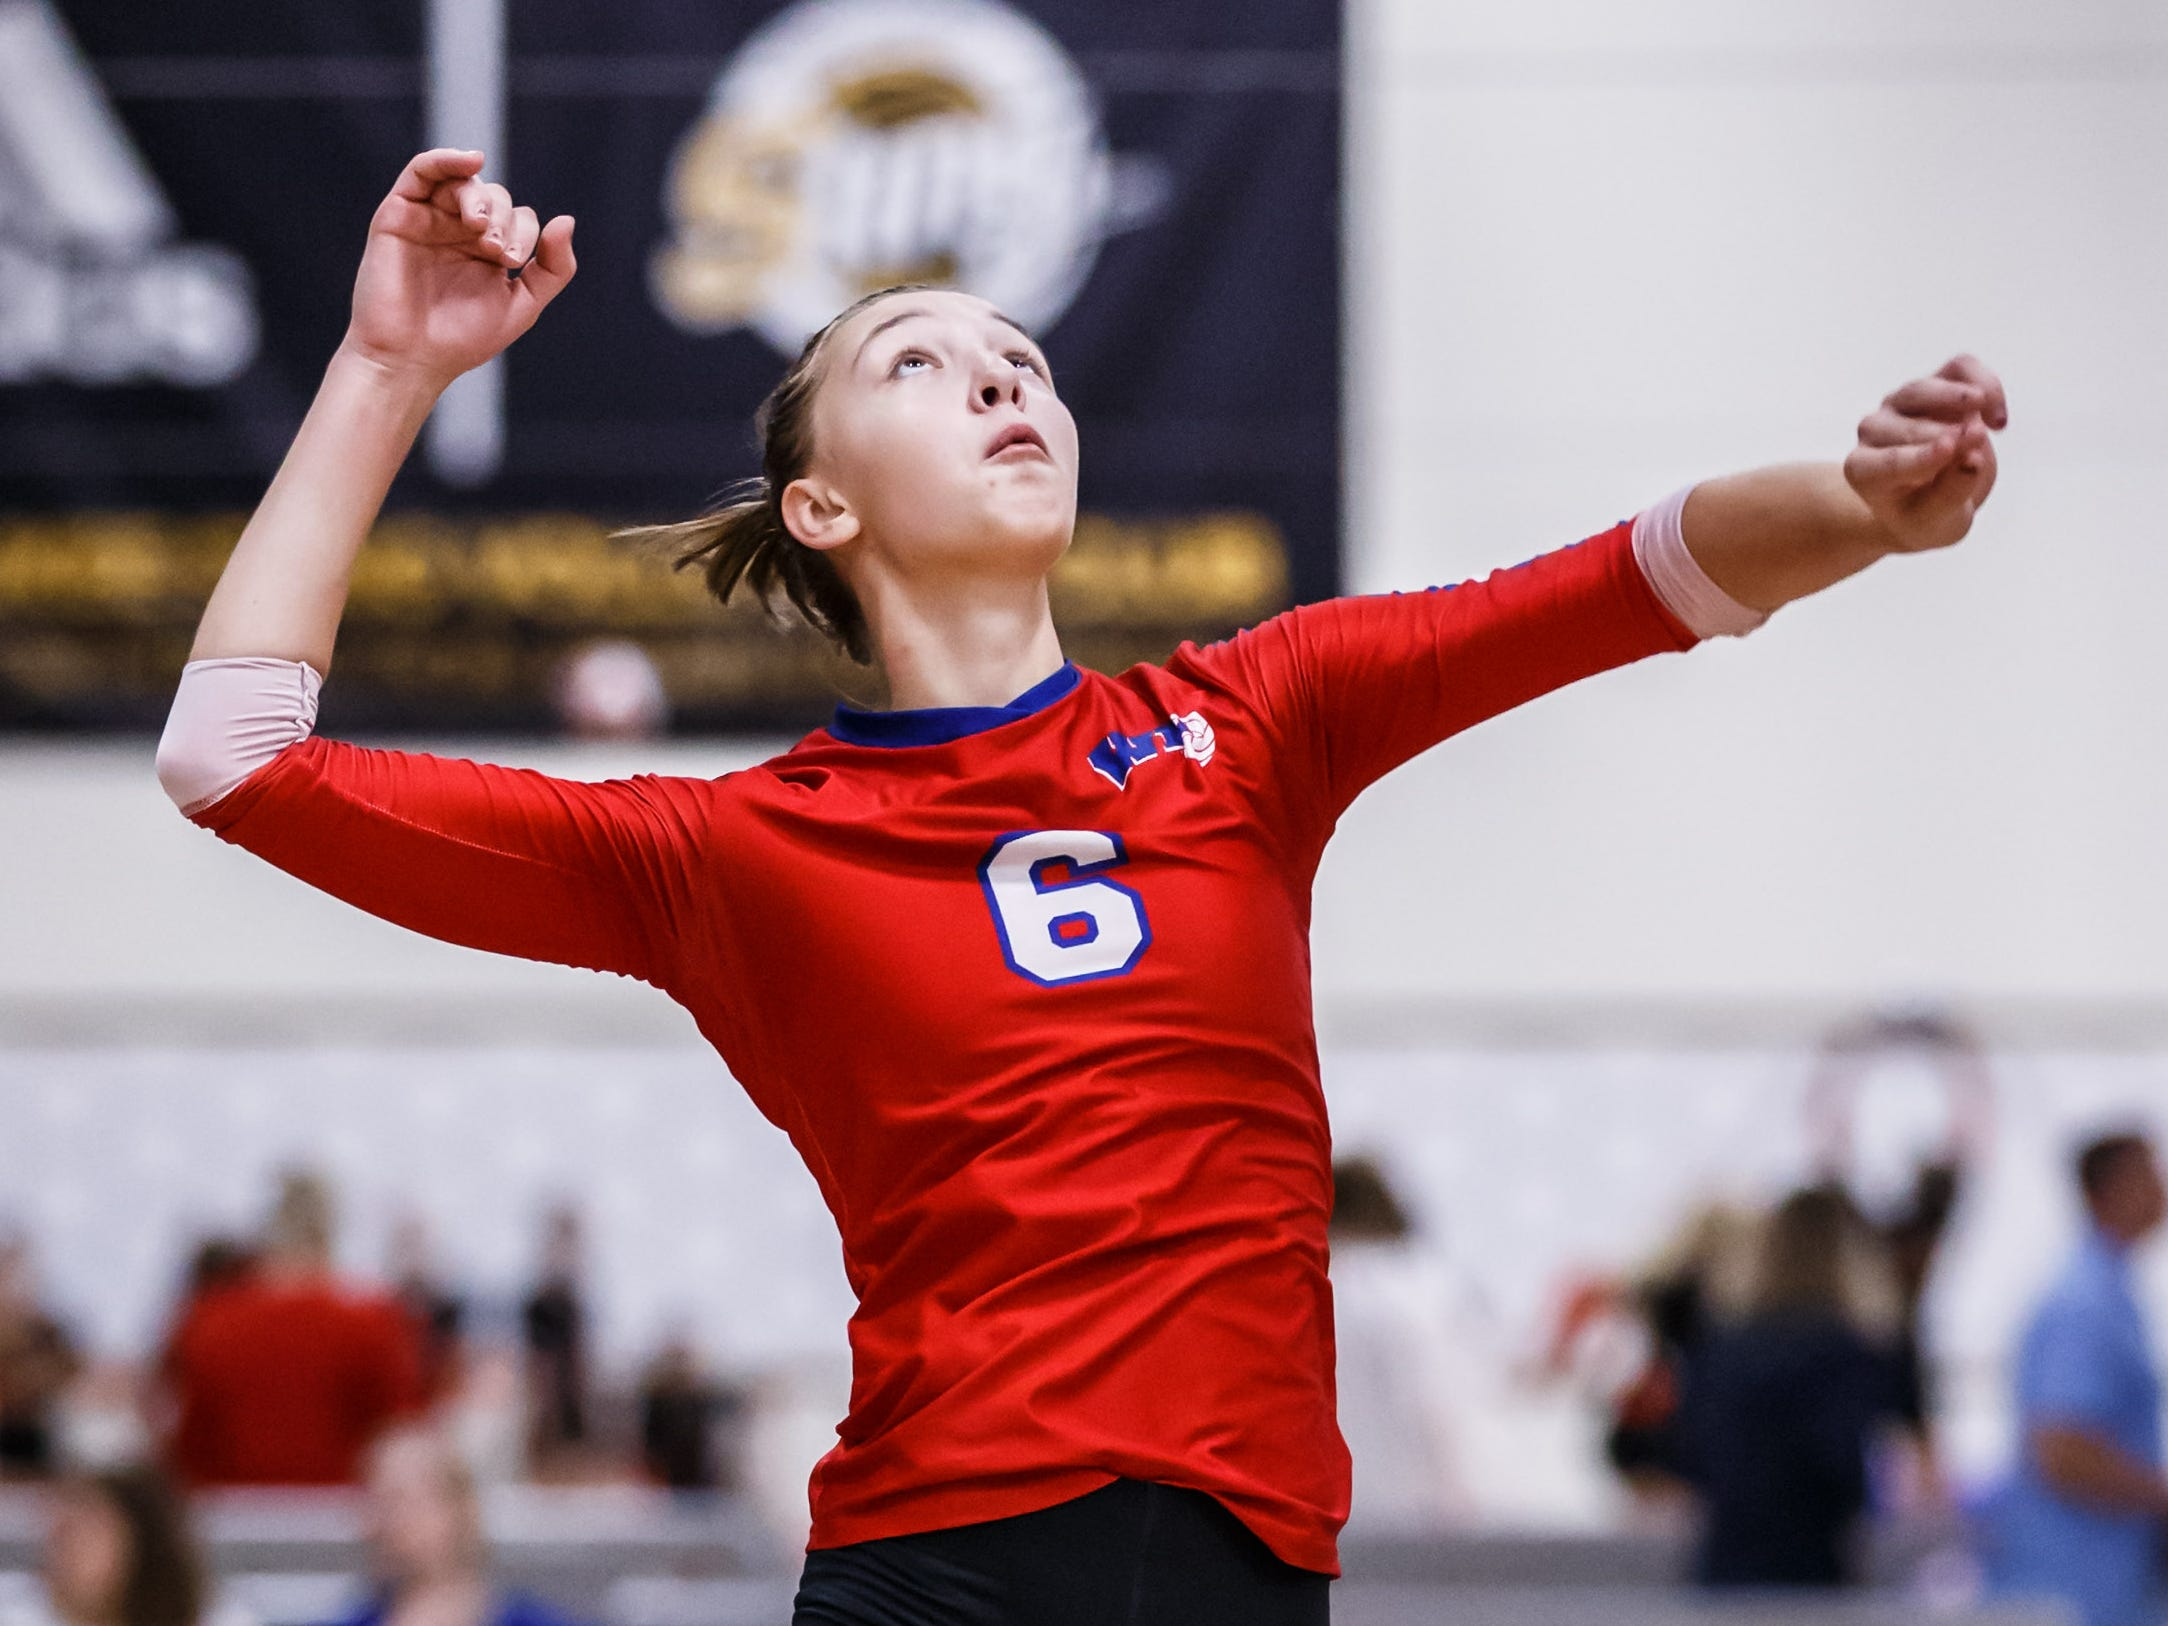 Wisconsin Lutheran junior Julia Treichel (6) elevates for a kill during a match at the 2018 Eastbay Charger Challenge hosted by Sussex Hamilton at the Milwaukee Sting Center in Menomonee Falls on Saturday, Sept. 15. Julia was awarded All-Tournament Player honors.